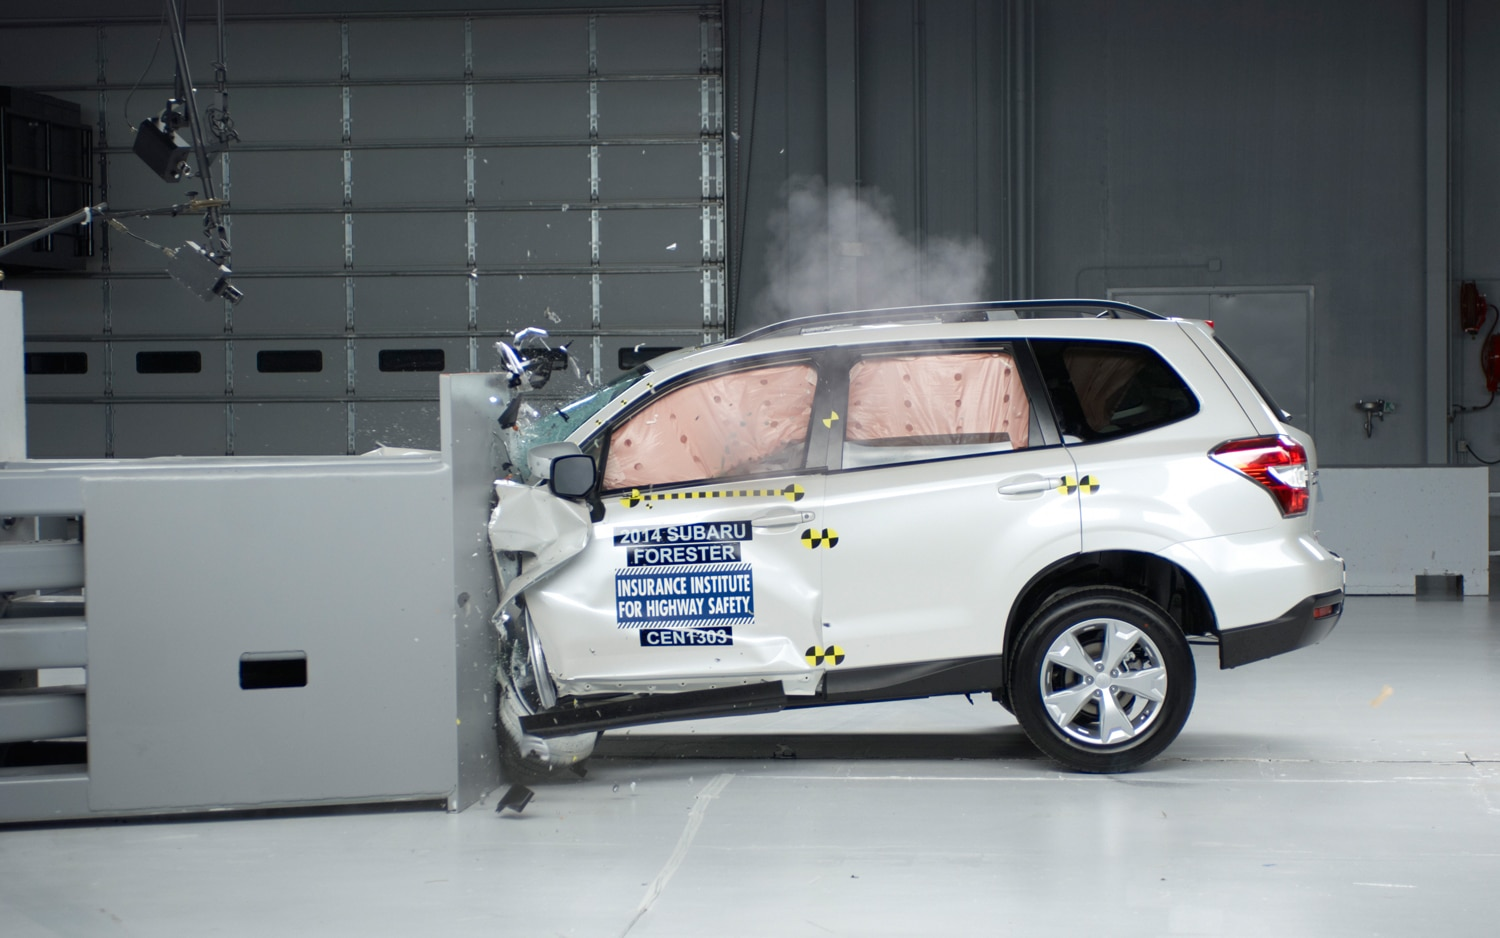 2014 Subaru Forester Crash Test1